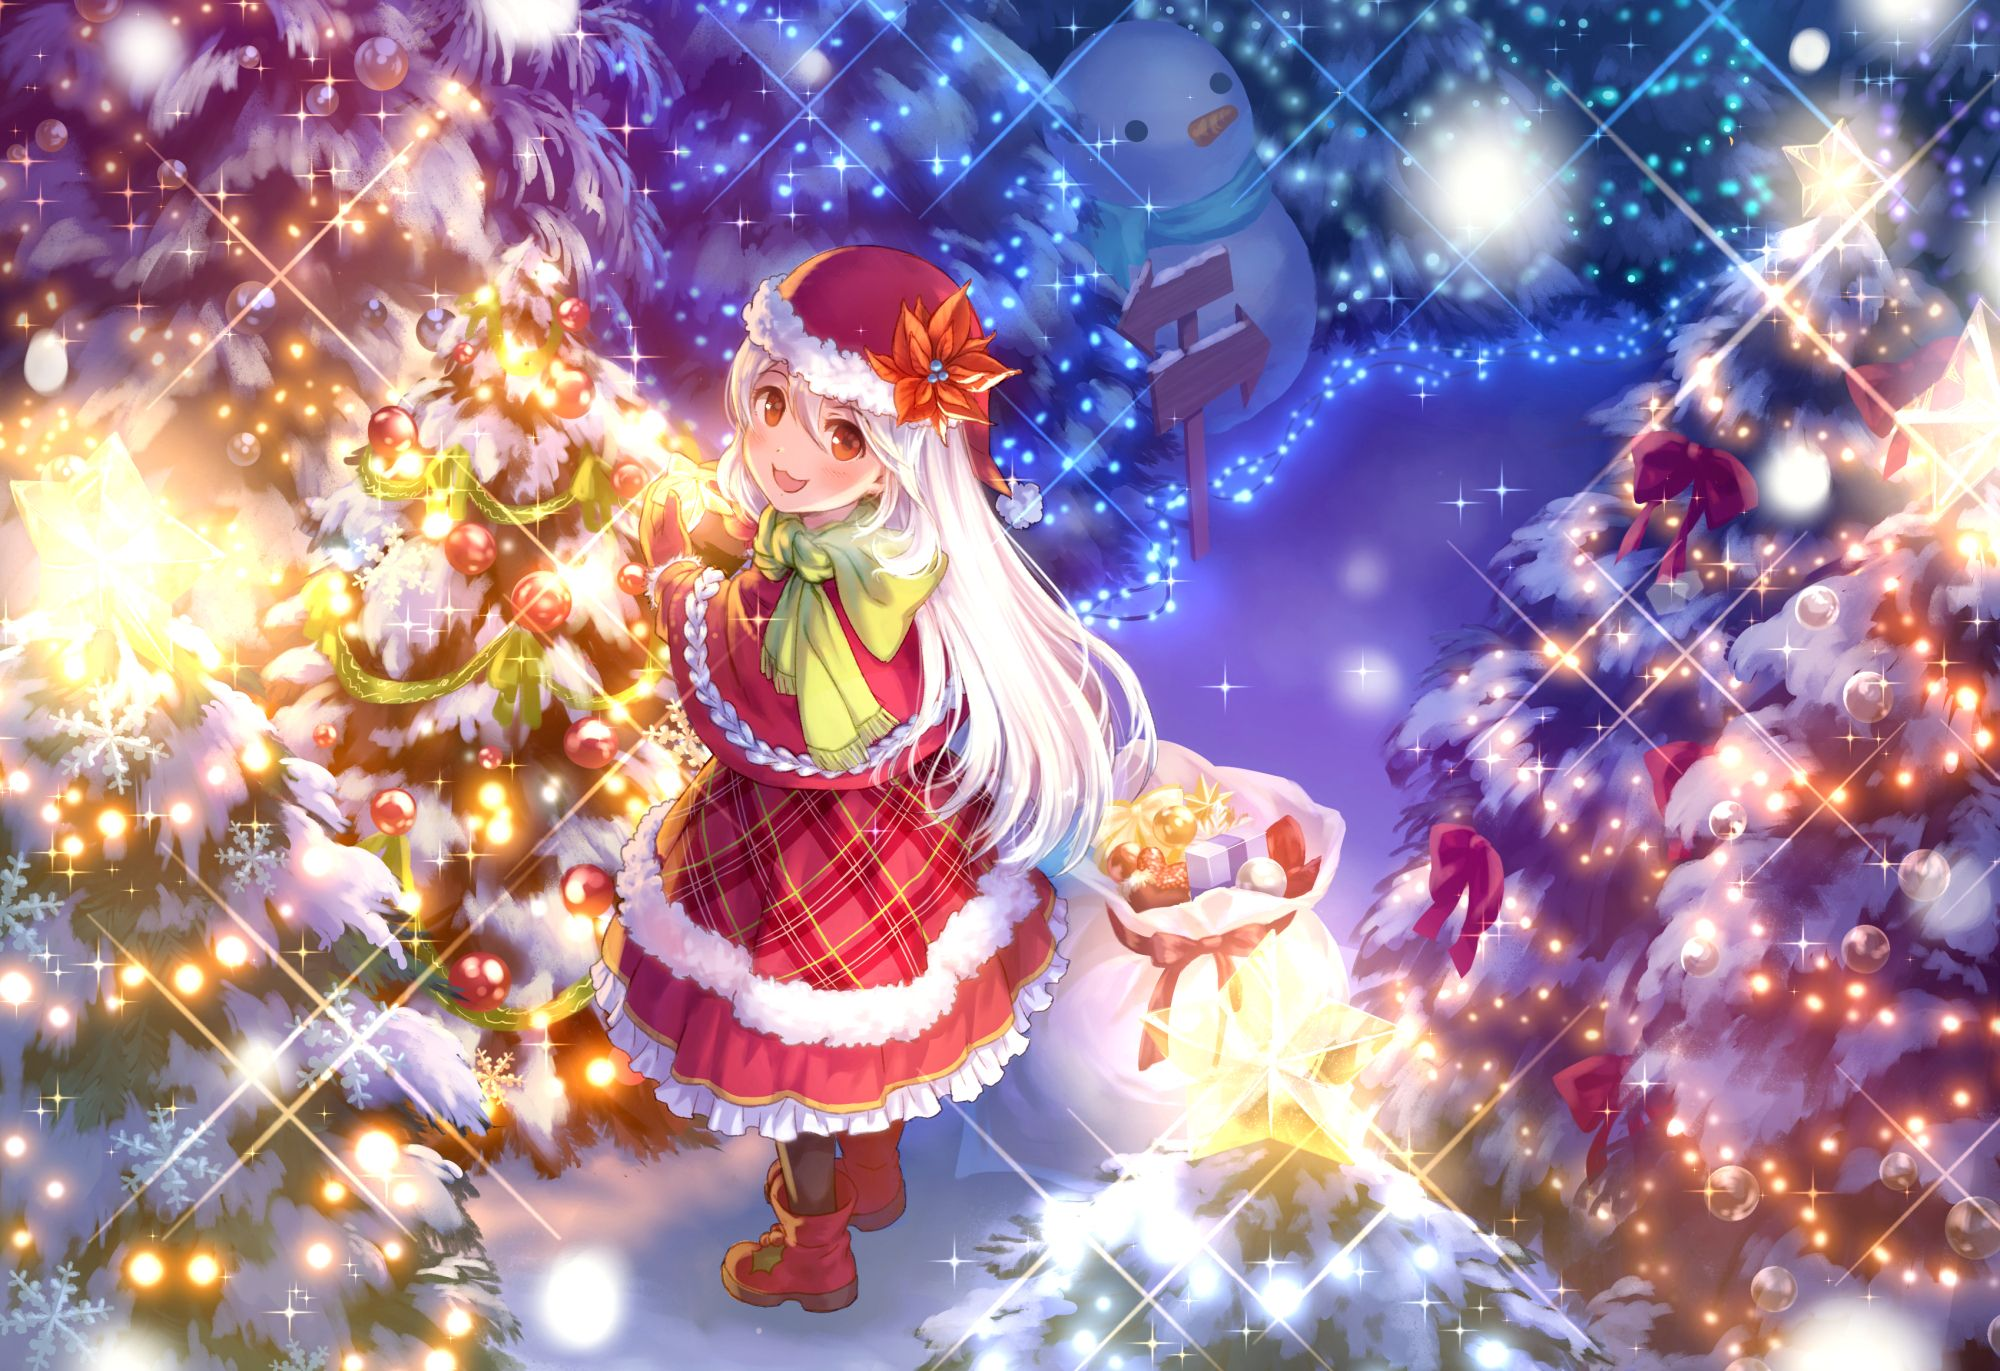 Christmas Anime.Anime Christmas Wallpapers Top Free Anime Christmas